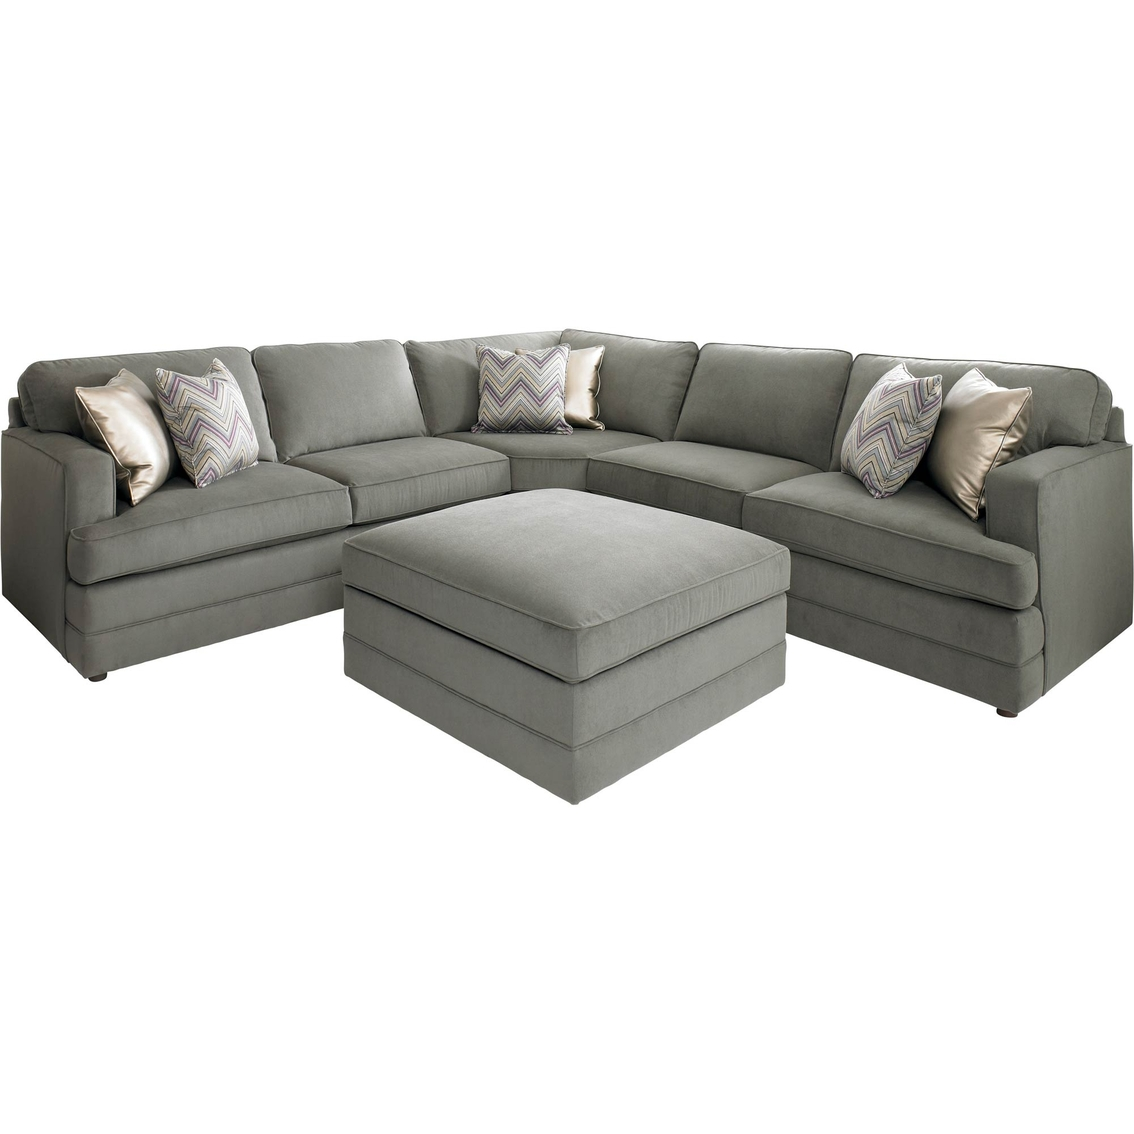 Bassett Dalton L-shaped Sectional Sofa With Ottoman : Sofas u0026 Couches : Home u0026 Appliances : Shop ...